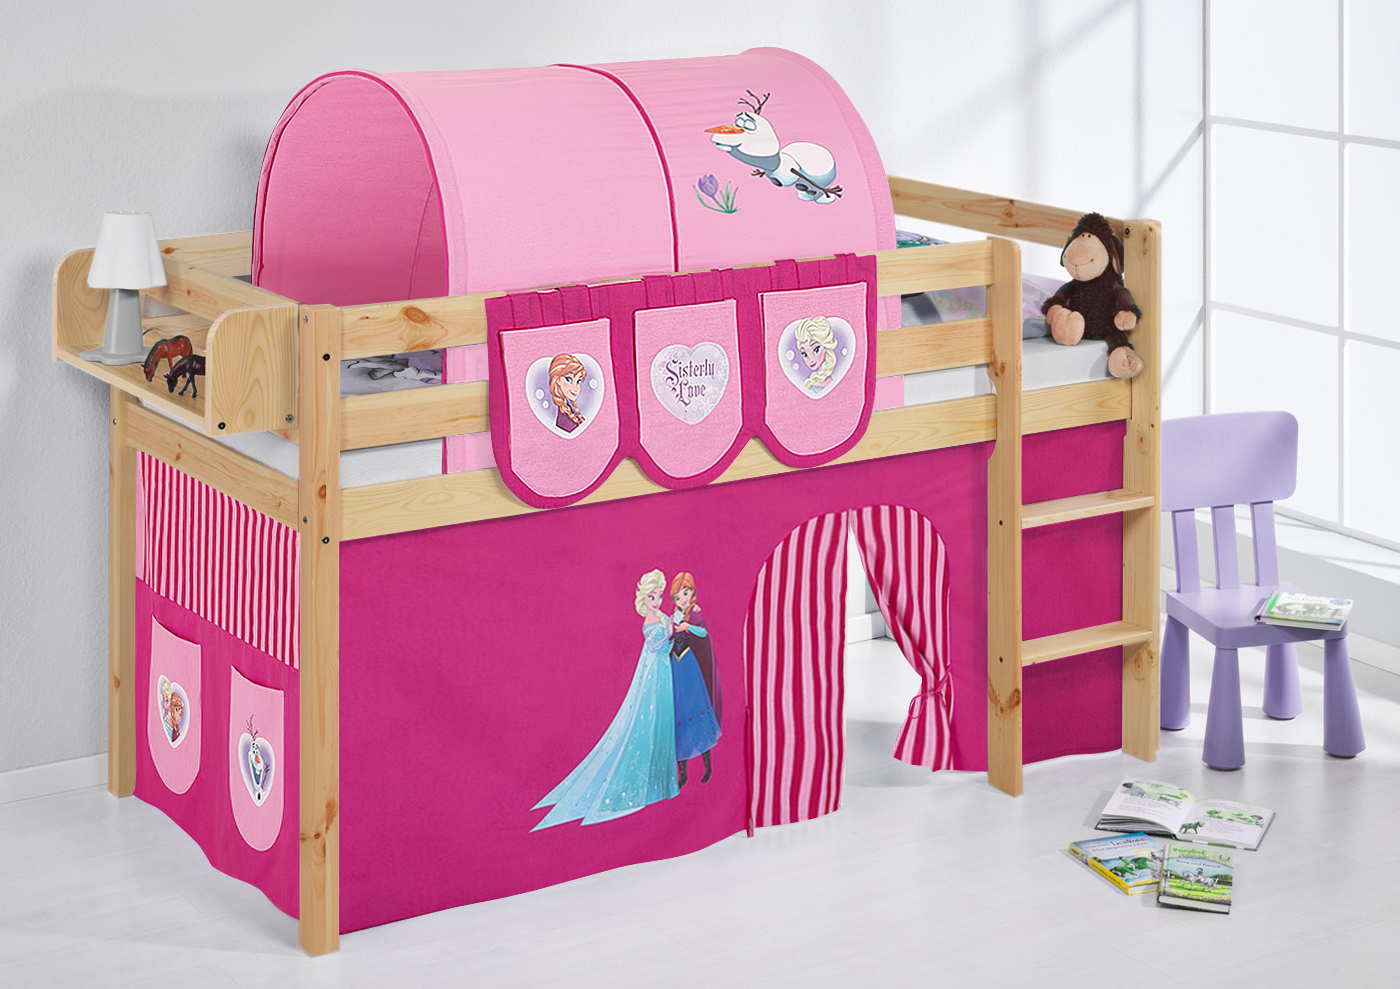 spielbett hochbett kinderbett kinder bett jelle natur. Black Bedroom Furniture Sets. Home Design Ideas